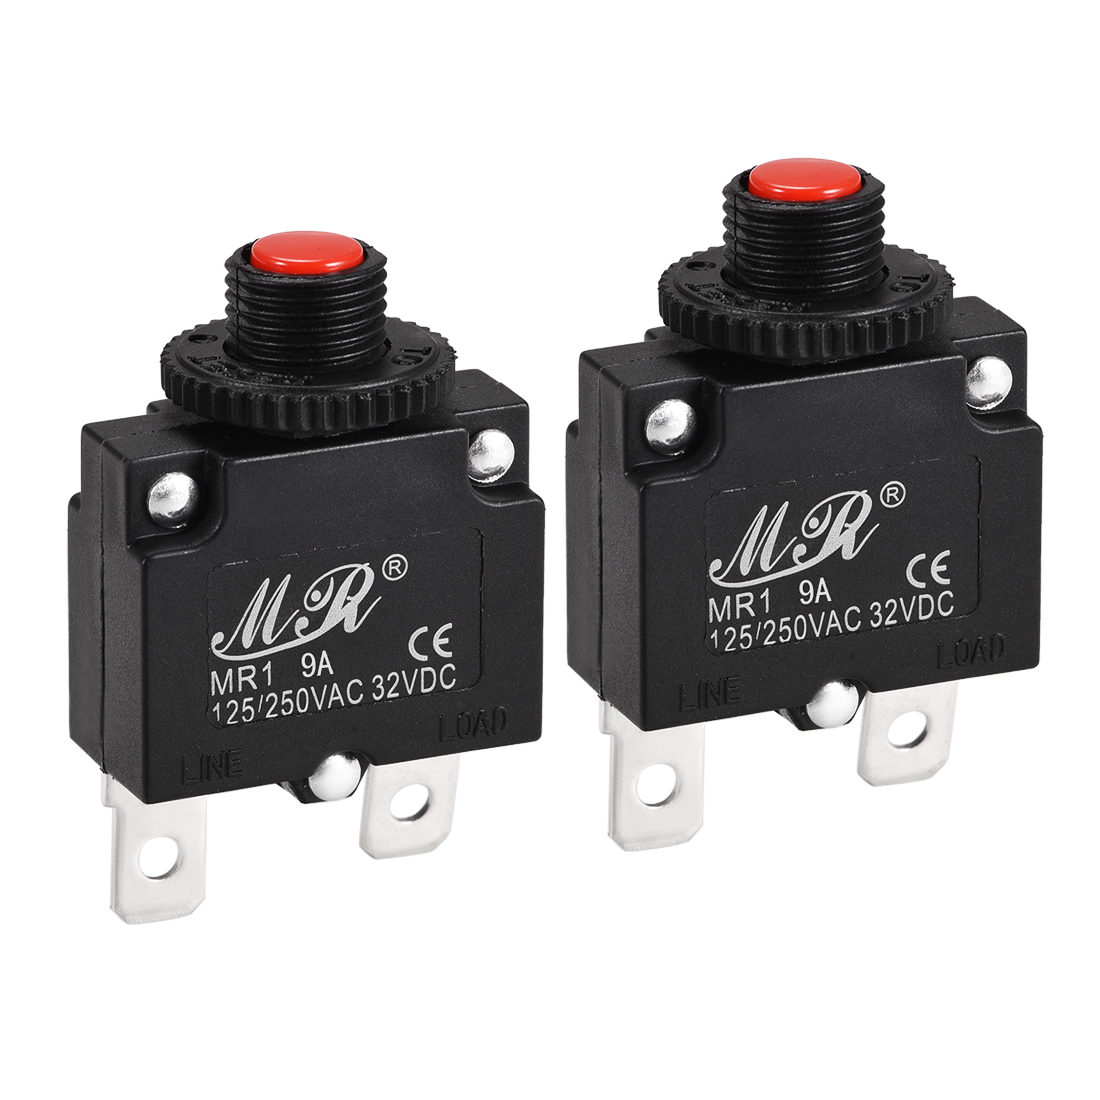 2 Pcs 9A Push Button Manual Reset Overload Protector Thermal Circuit Breakers